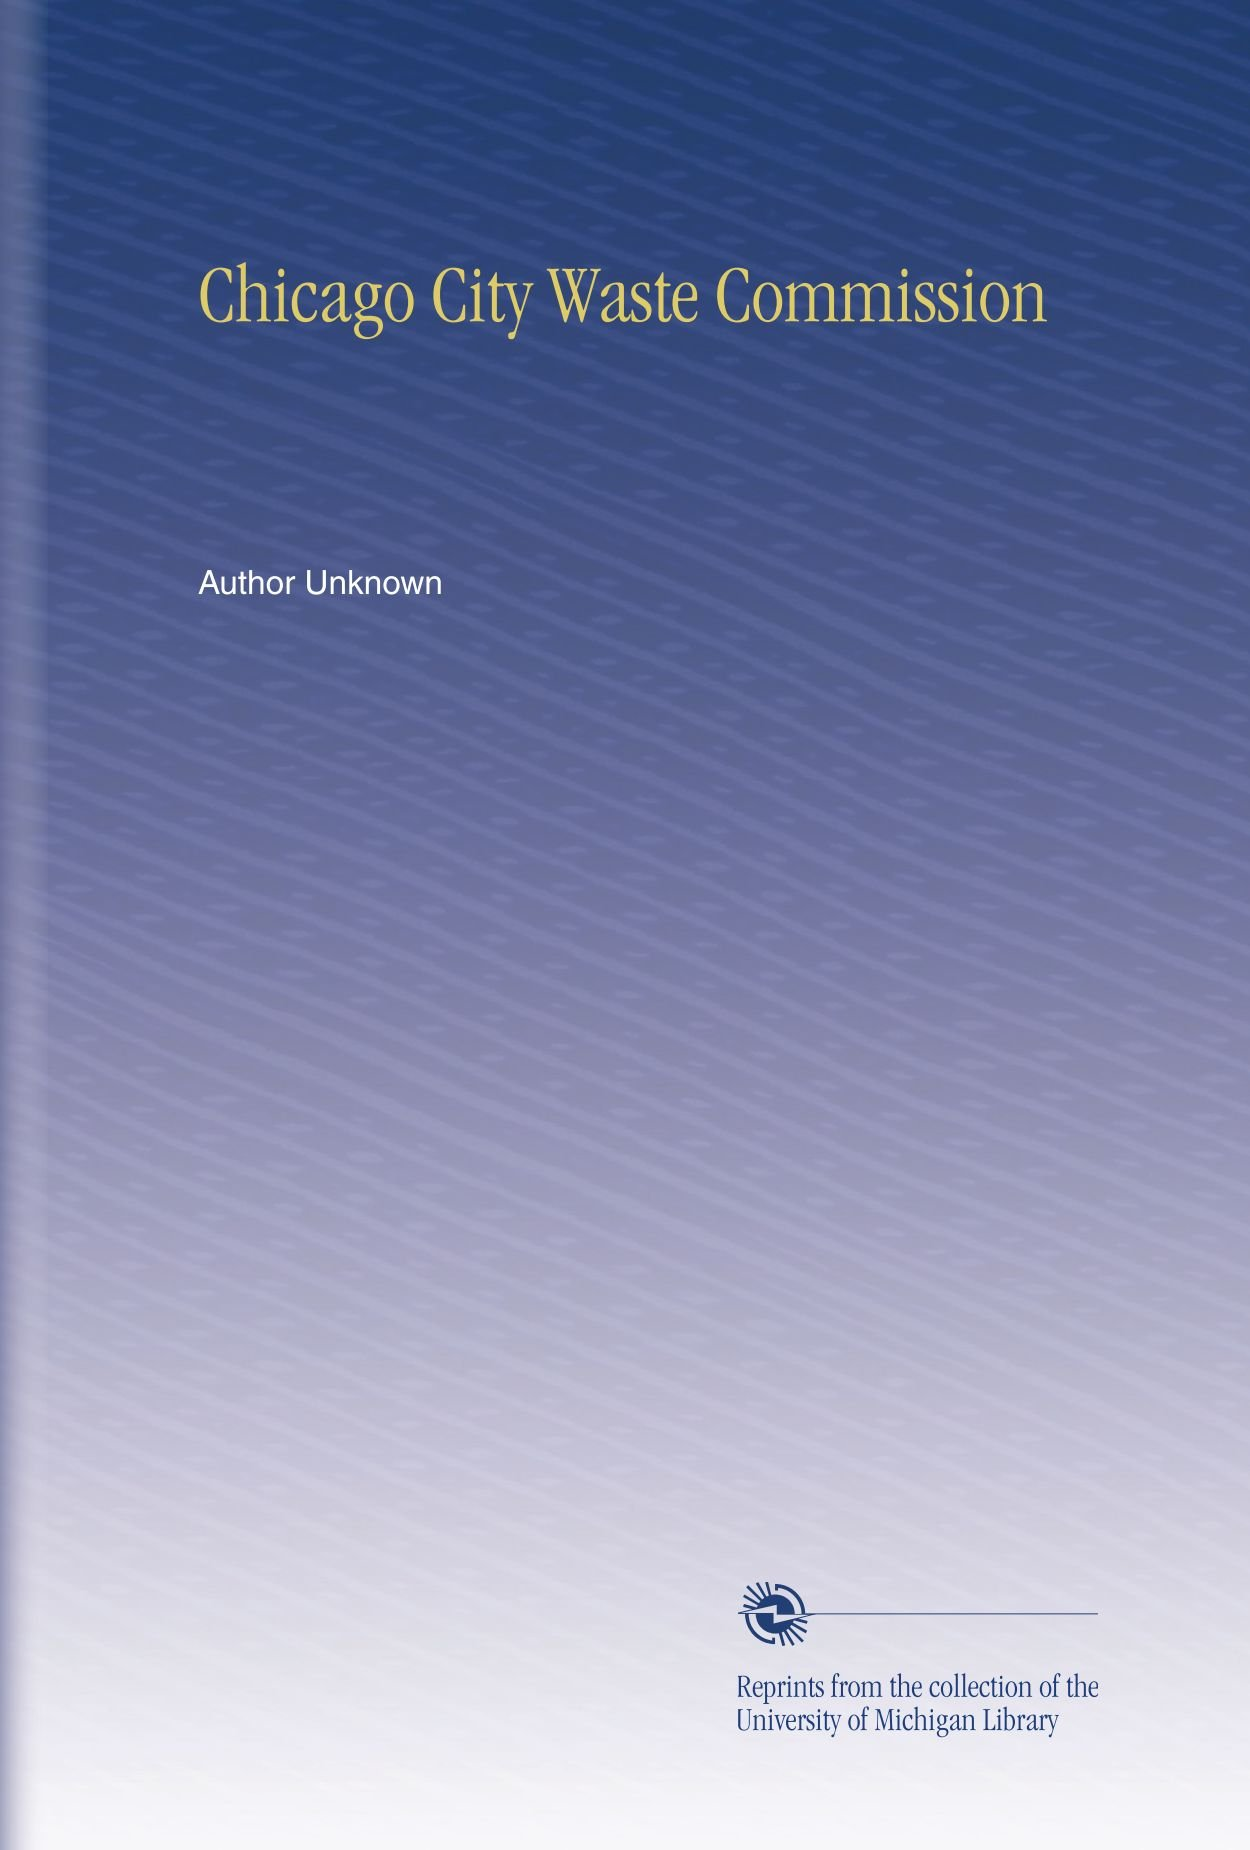 Download Chicago City Waste Commission ebook